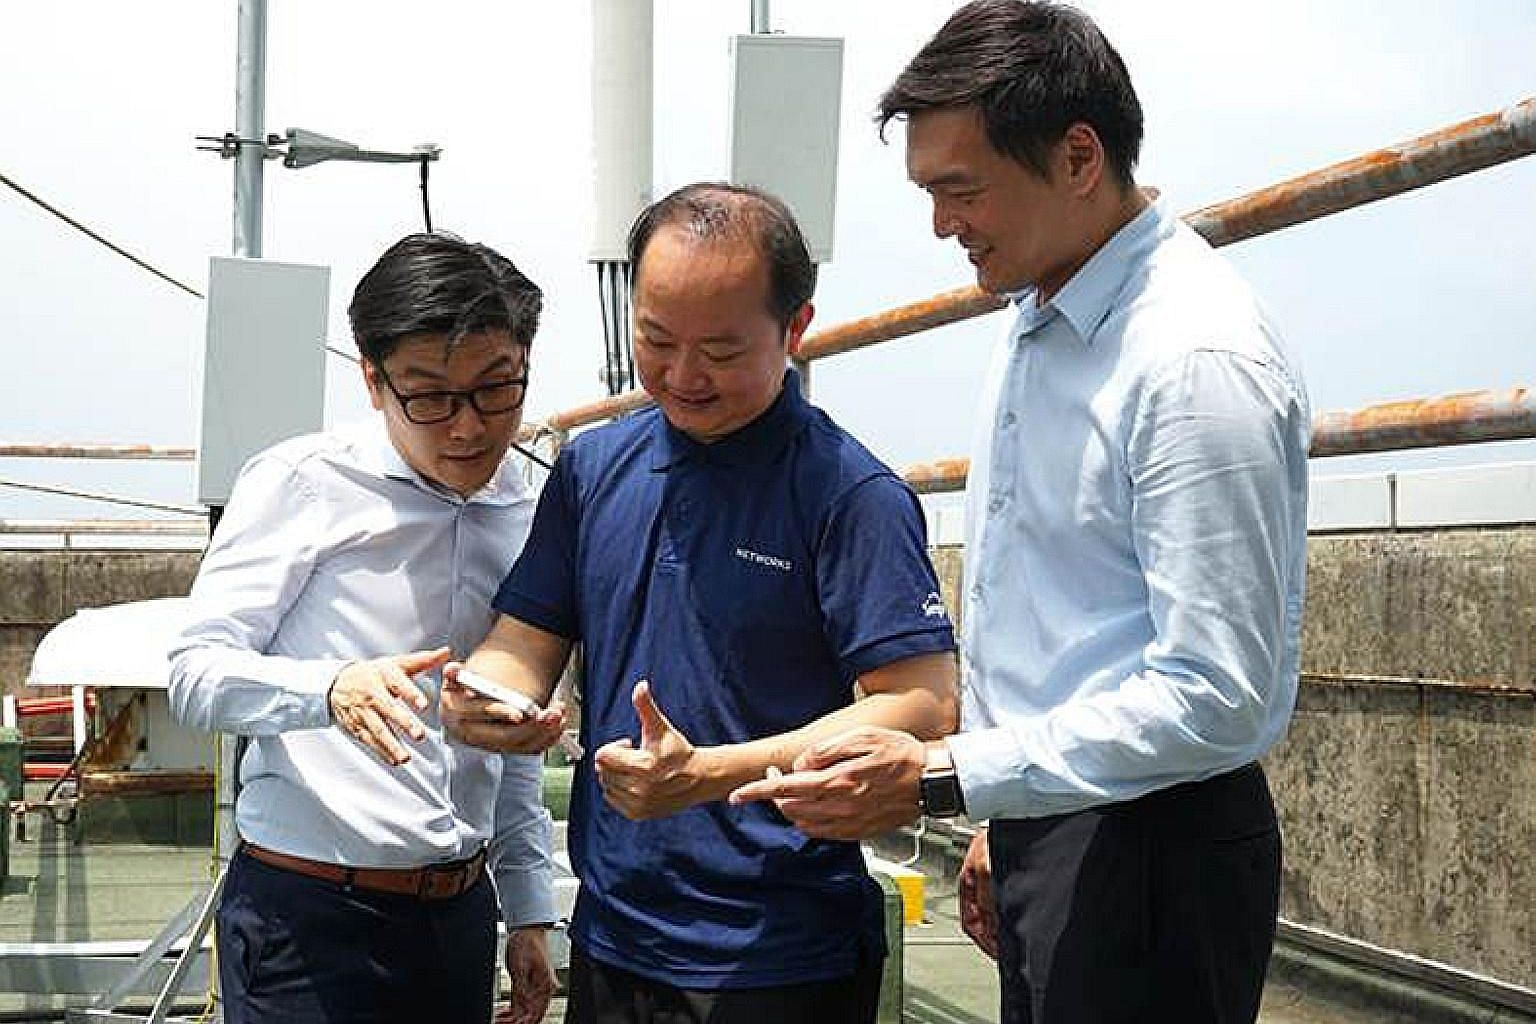 Singtel engineers in Singapore using the Oppo 5G test device during the three-minute 5G video call with their Optus counterparts in Sydney.